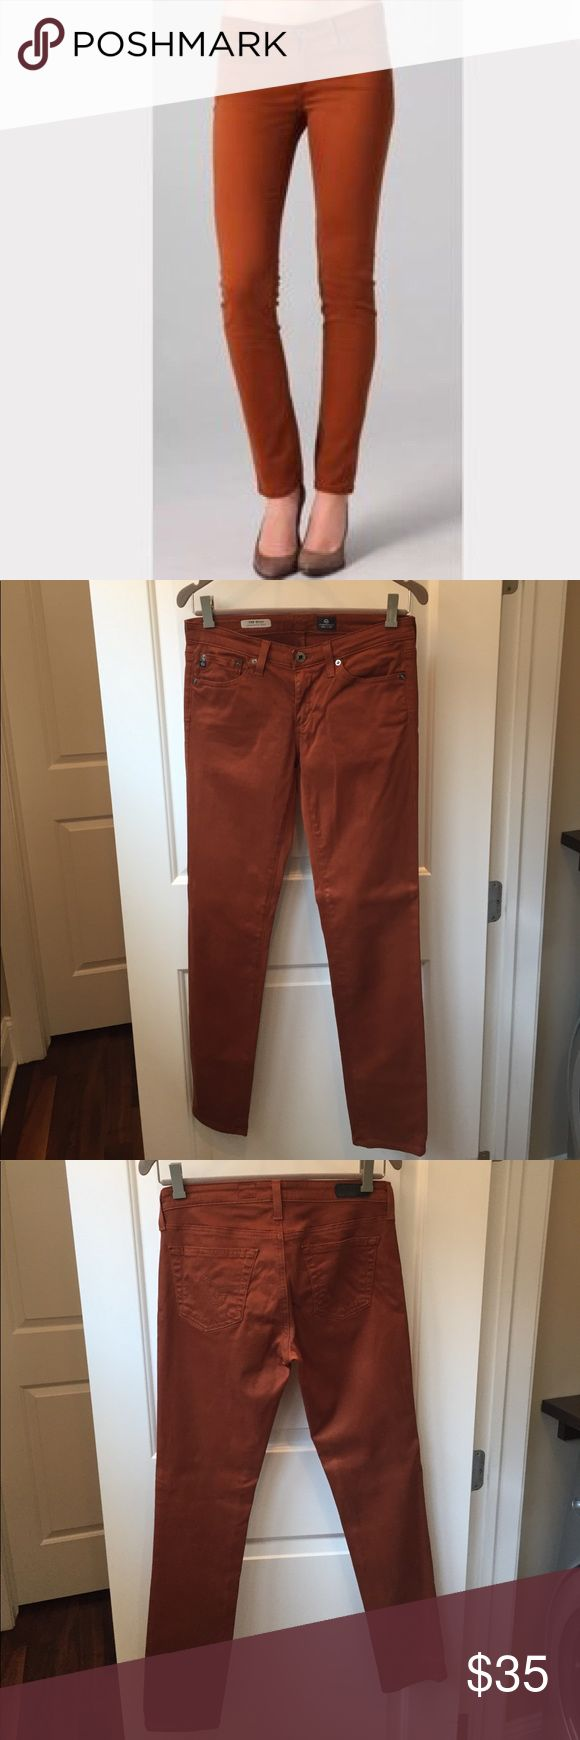 AG The Stilt Cigarette Jean, Size 26R. AG The Stilt Cigarette Jean, Size 26R Great condition. On tread rust color. Ag Adriano Goldschmied Jeans Skinny